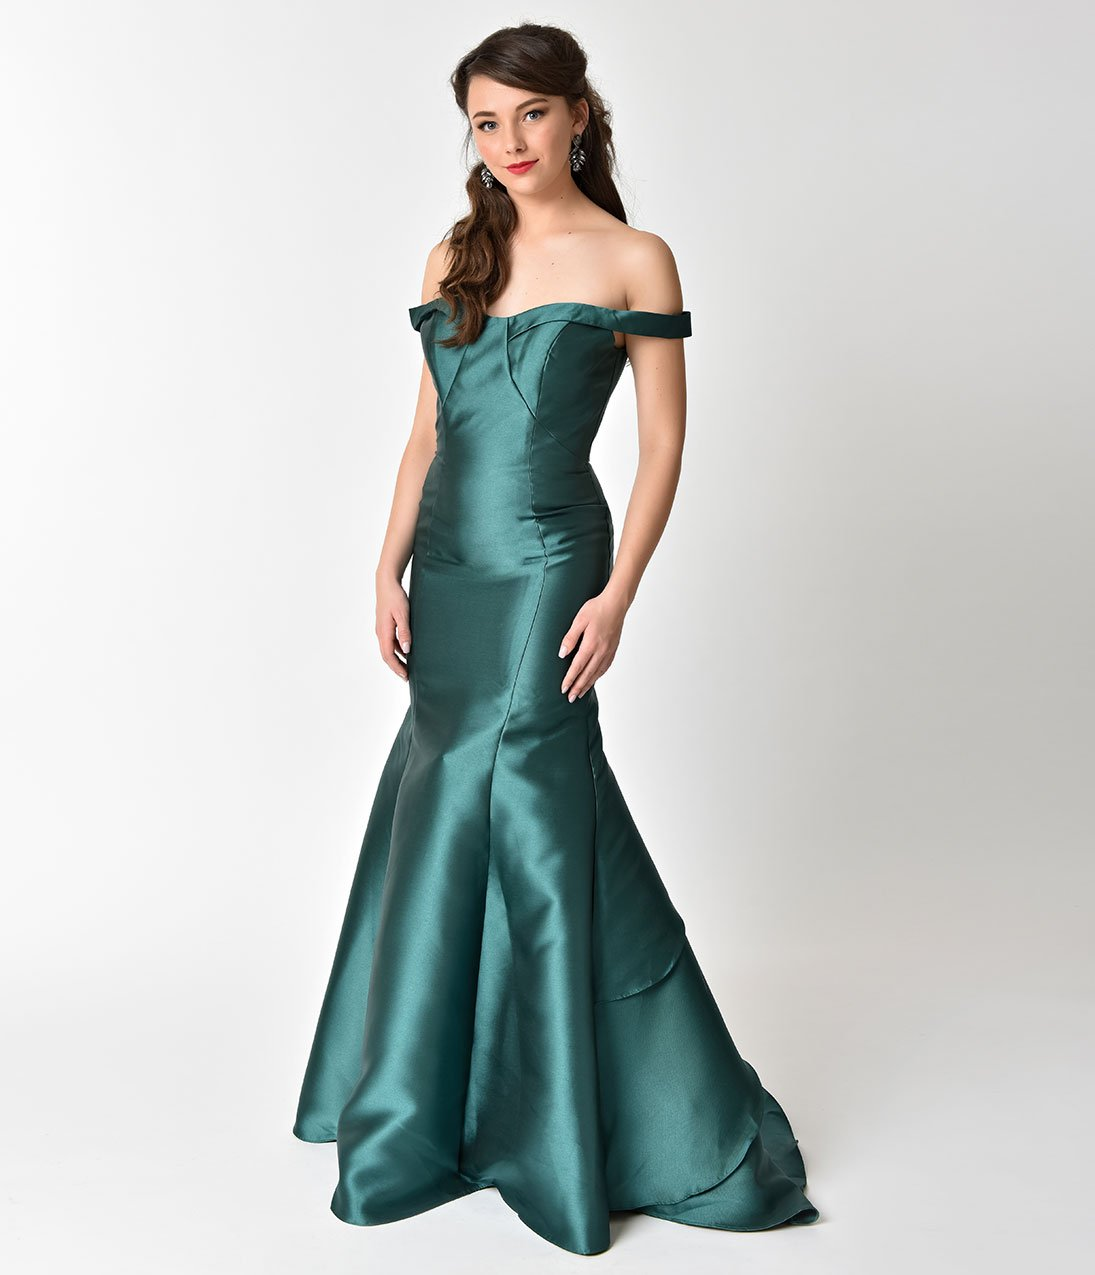 63d71925981 Disney prom dresses that will make you feel like the belle of the ...